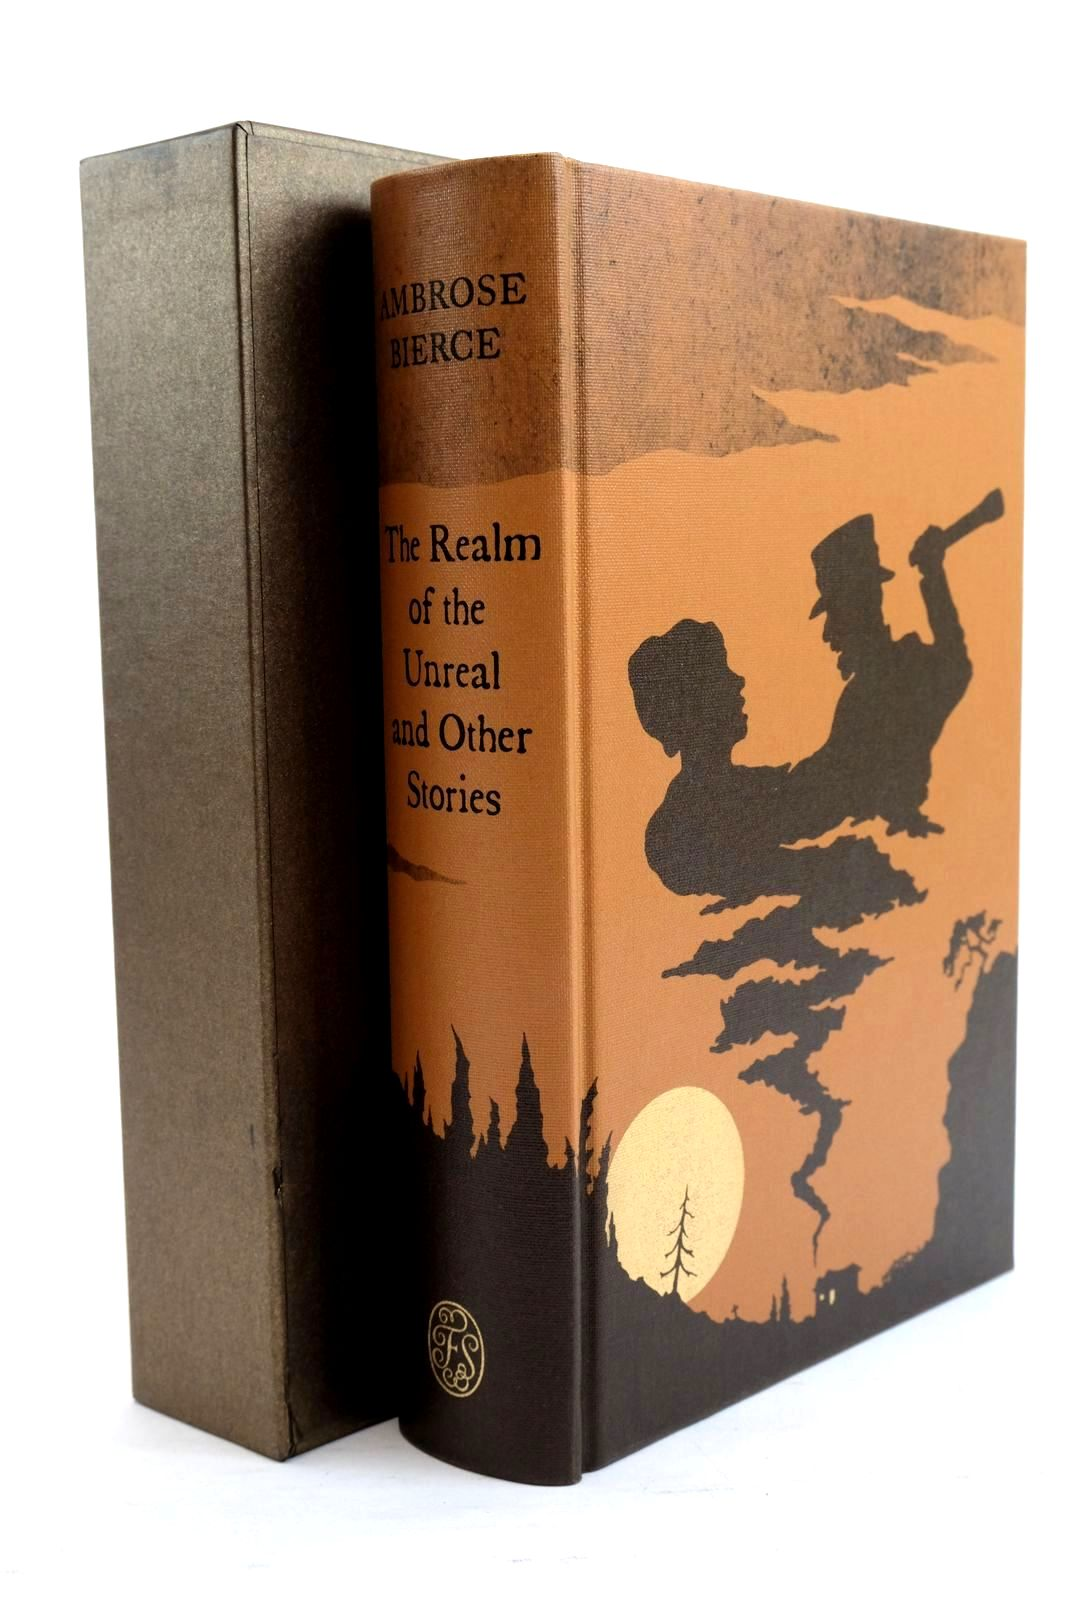 Photo of THE REALM OF THE UNREAL AND OTHER STORIES written by Bierce, Ambrose Self, Will illustrated by Sissons, Nathan published by Folio Society (STOCK CODE: 1320772)  for sale by Stella & Rose's Books